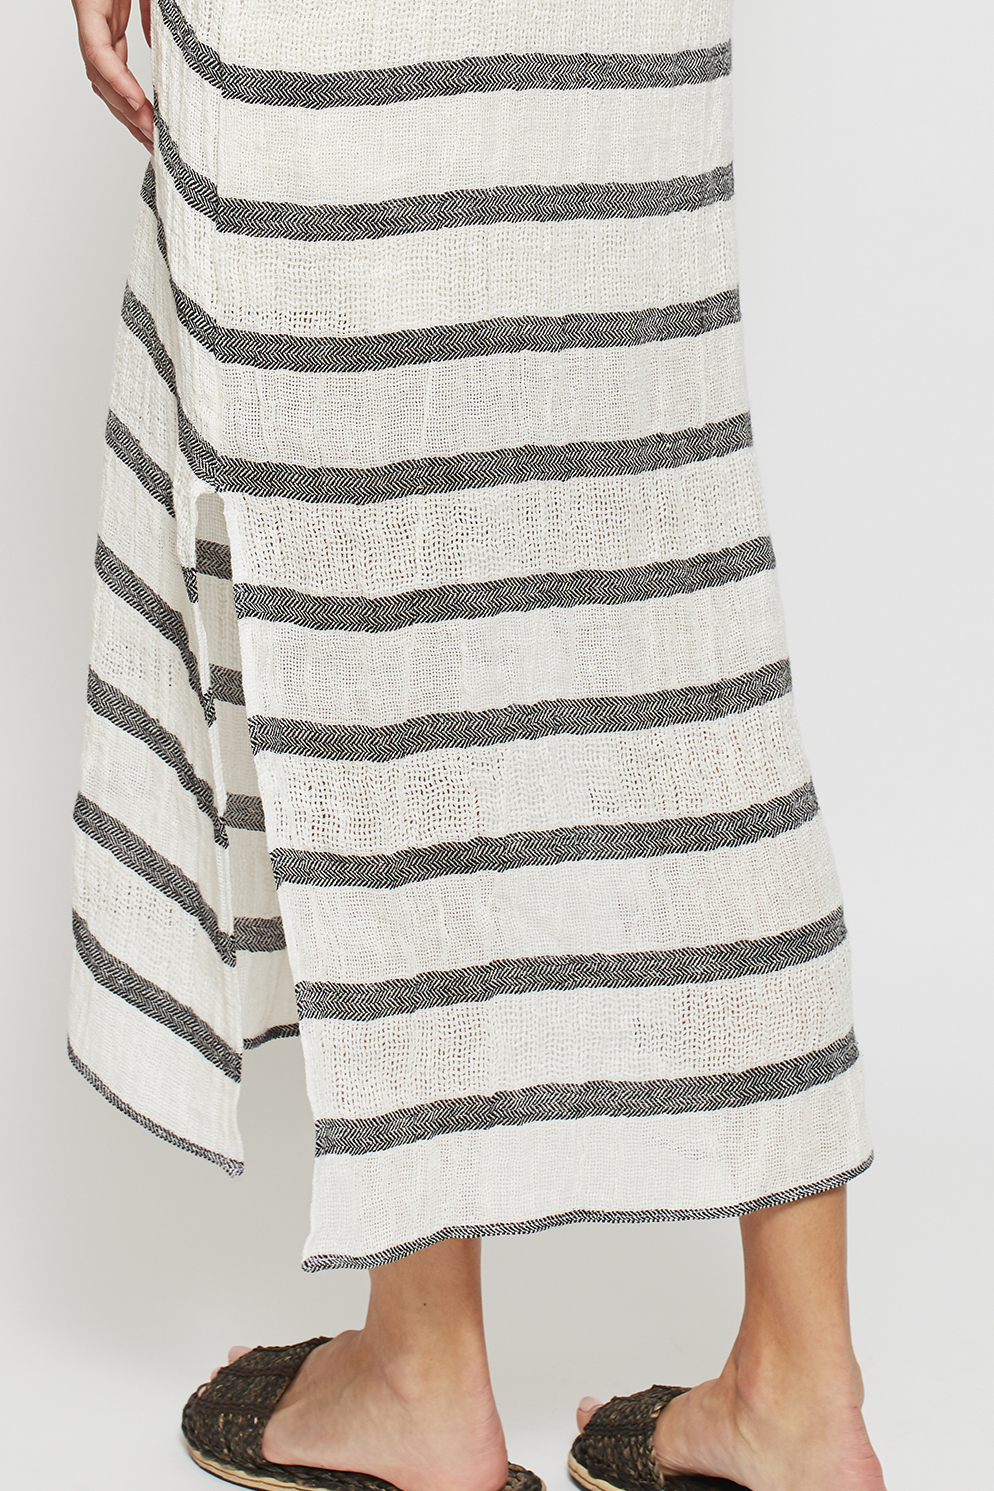 This garment also features a horizontal stripe with an intricate chevron weave, giving the kaftan it's beautiful, textural finish. Each garment may vary slightly in relation to stripe placement, as each item is cut individually, making them all moderately unique.